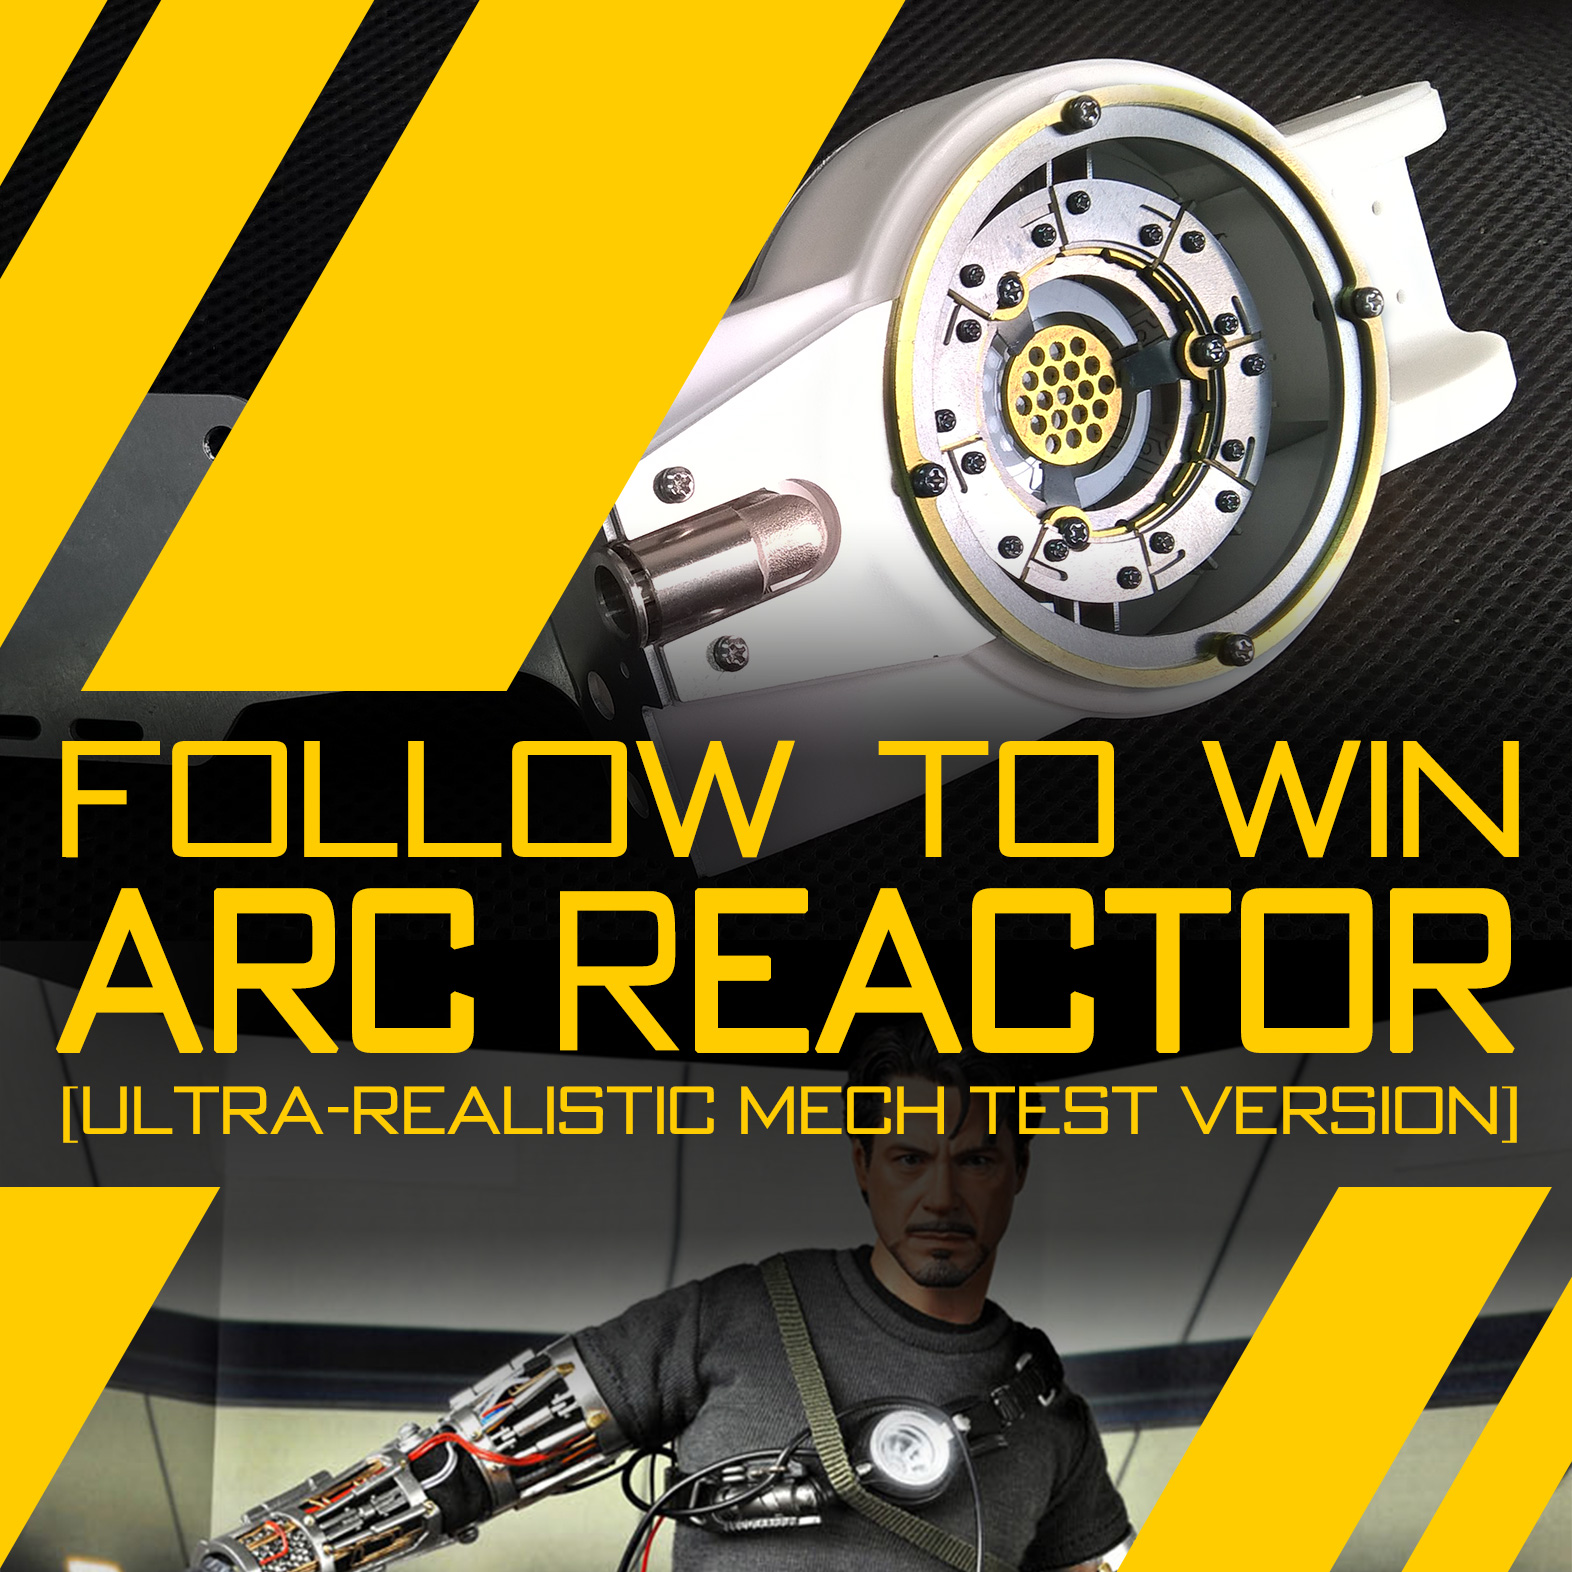 Follow Our Instagram to Win Arc Reactor [Ultra-realistic Mech Test Version]